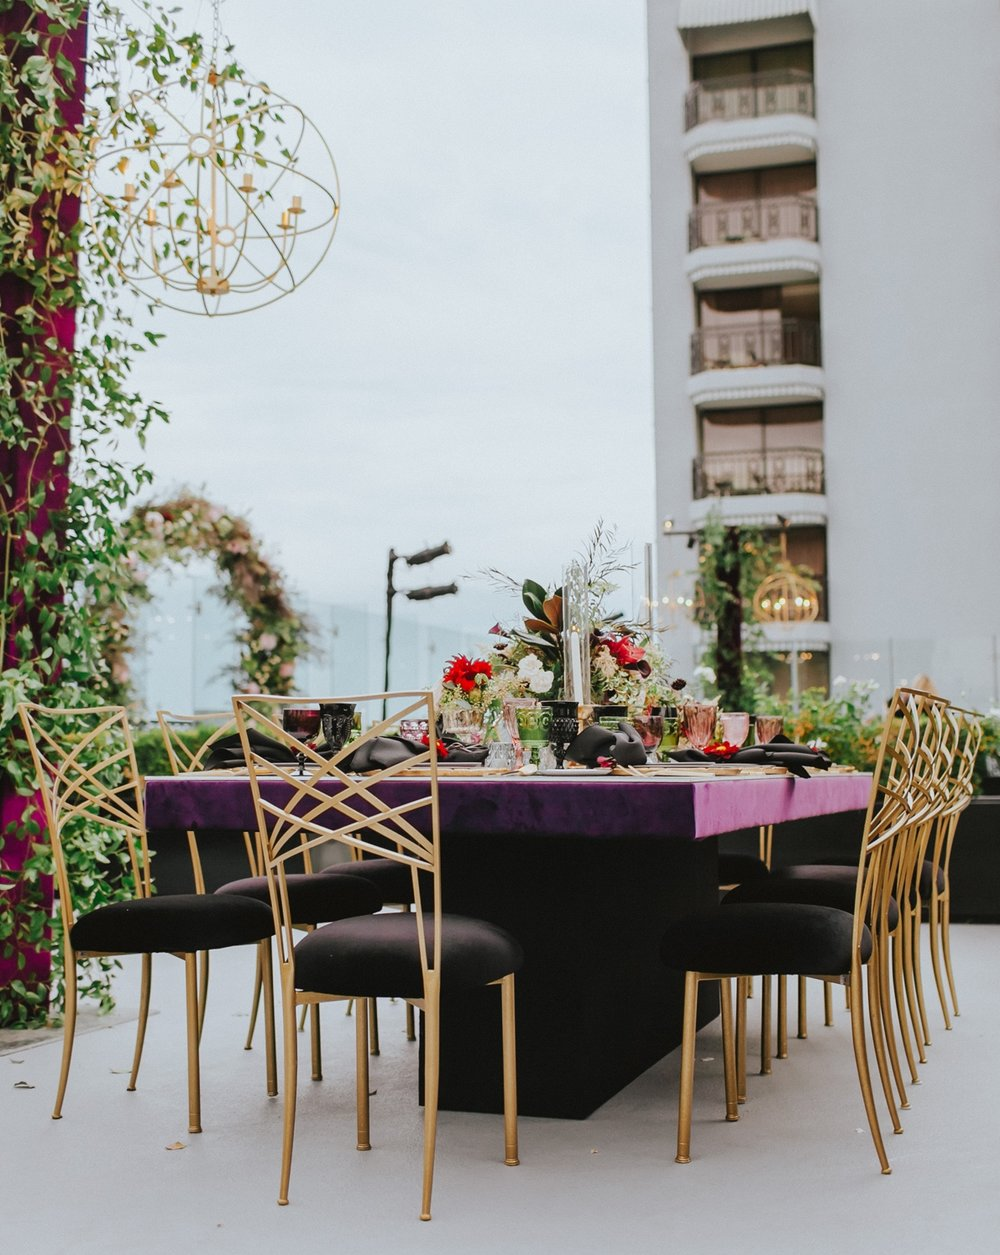 Breathtaking Contemporary Jewel Toned Fall Posh Wedding dinner space on roof.jpg